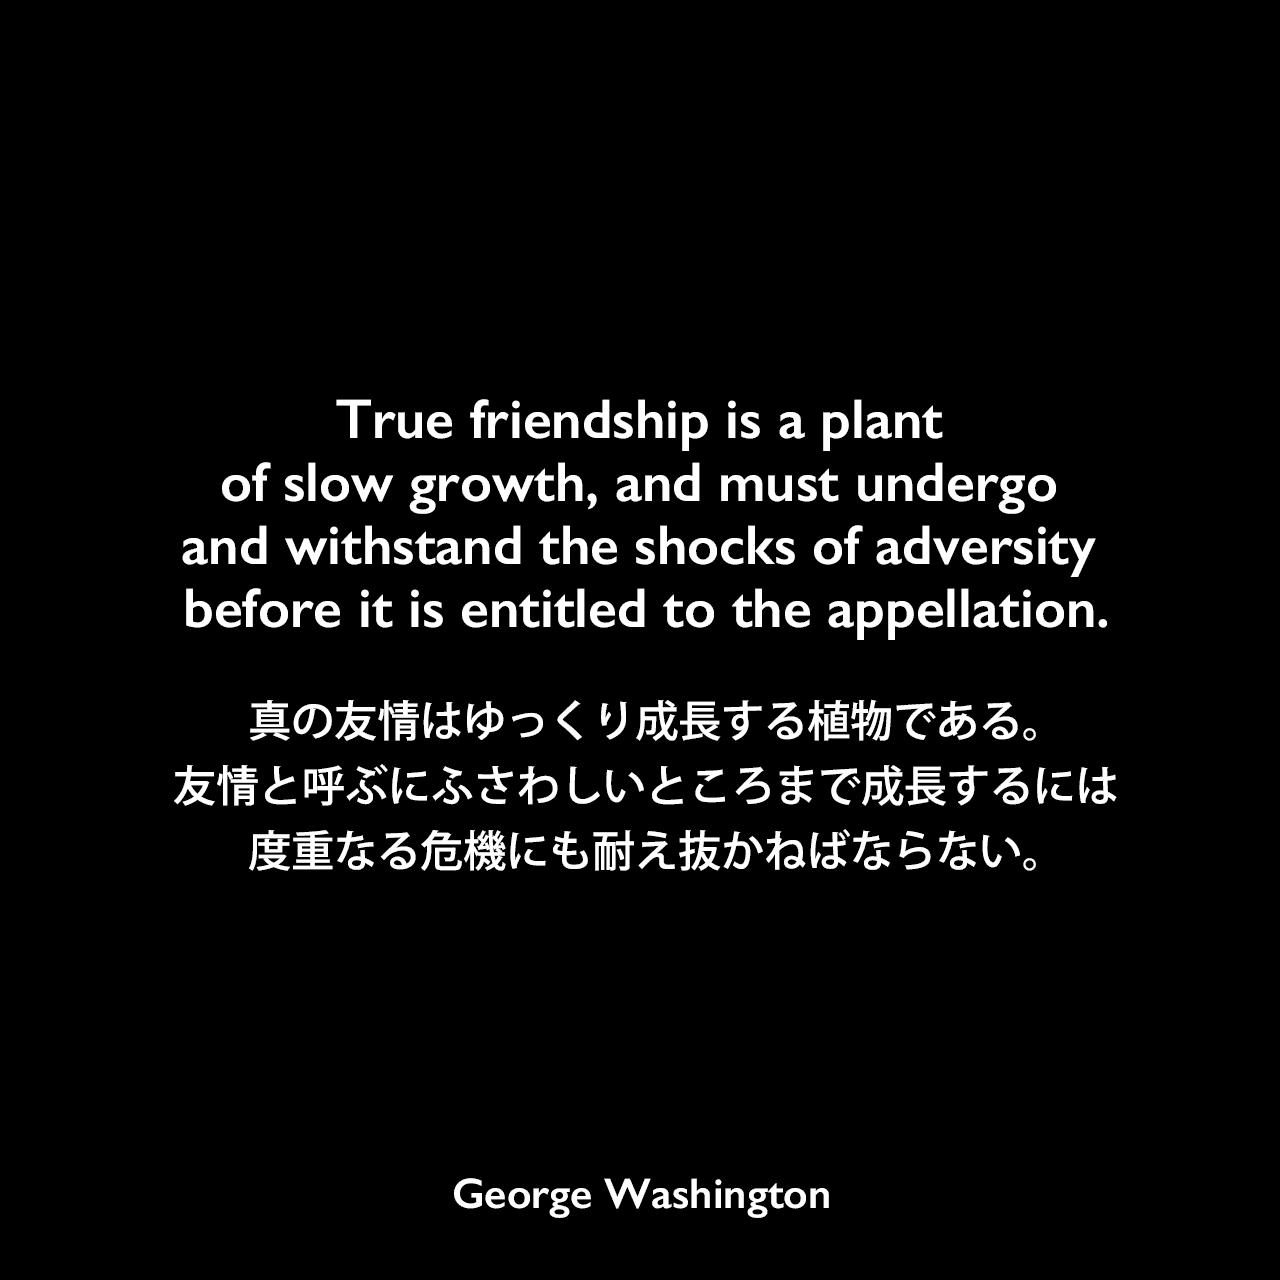 True friendship is a plant of slow growth, and must undergo and withstand the shocks of adversity before it is entitled to the appellation.真の友情はゆっくり成長する植物である。友情と呼ぶにふさわしいところまで成長するには、度重なる危機にも耐え抜かねばならない。- 最高裁判所判事ブッシュロッド・ワシントンに宛てた手紙よりGeorge Washington